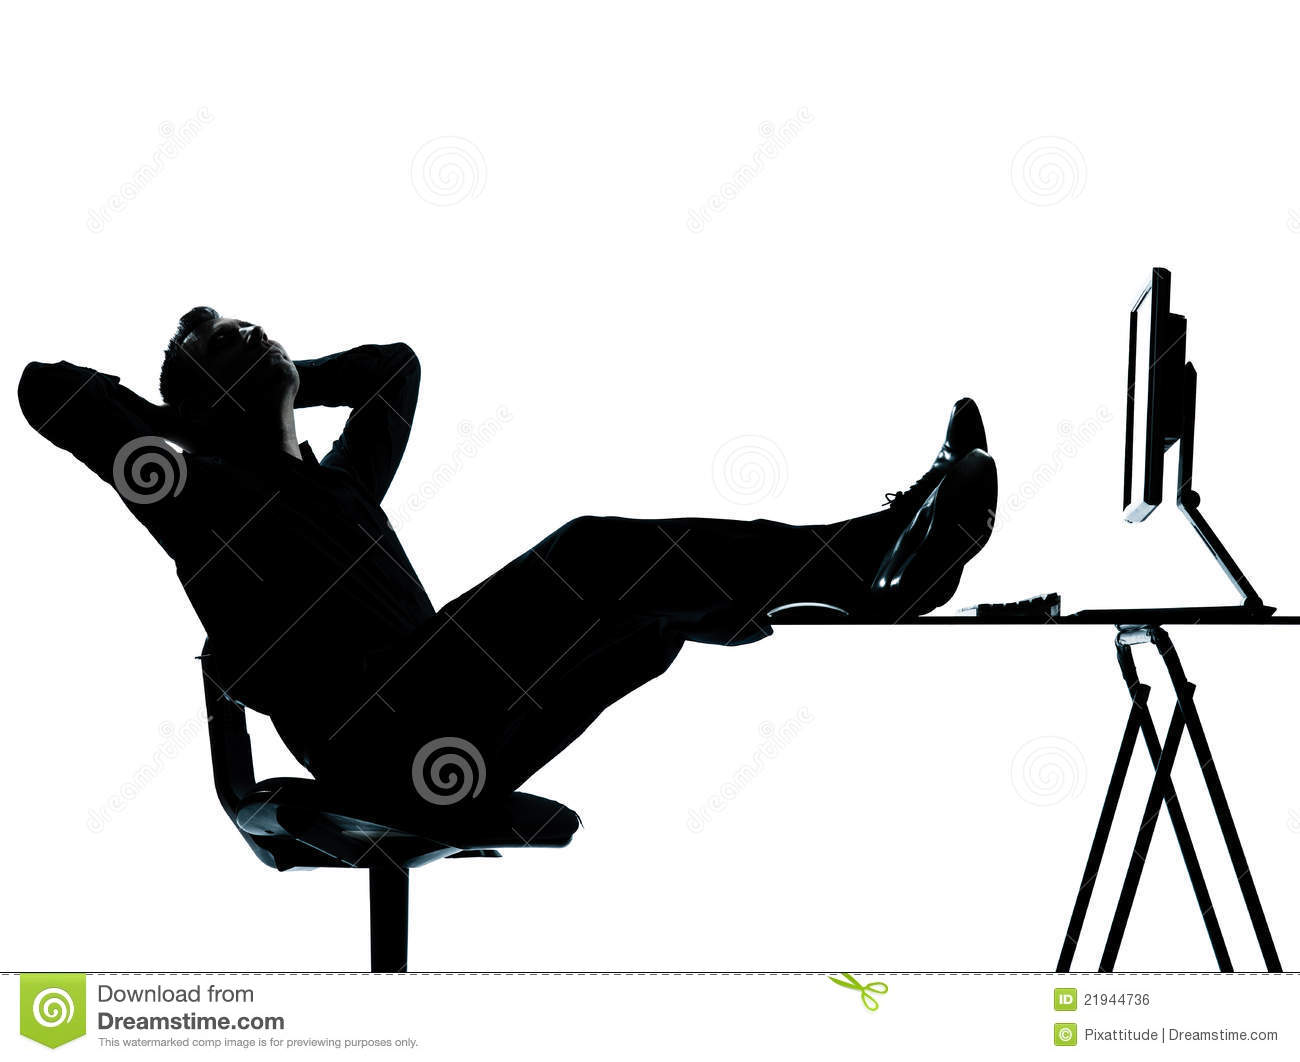 one-business-man-computer-relaxing-silhouette-21944736.jpg